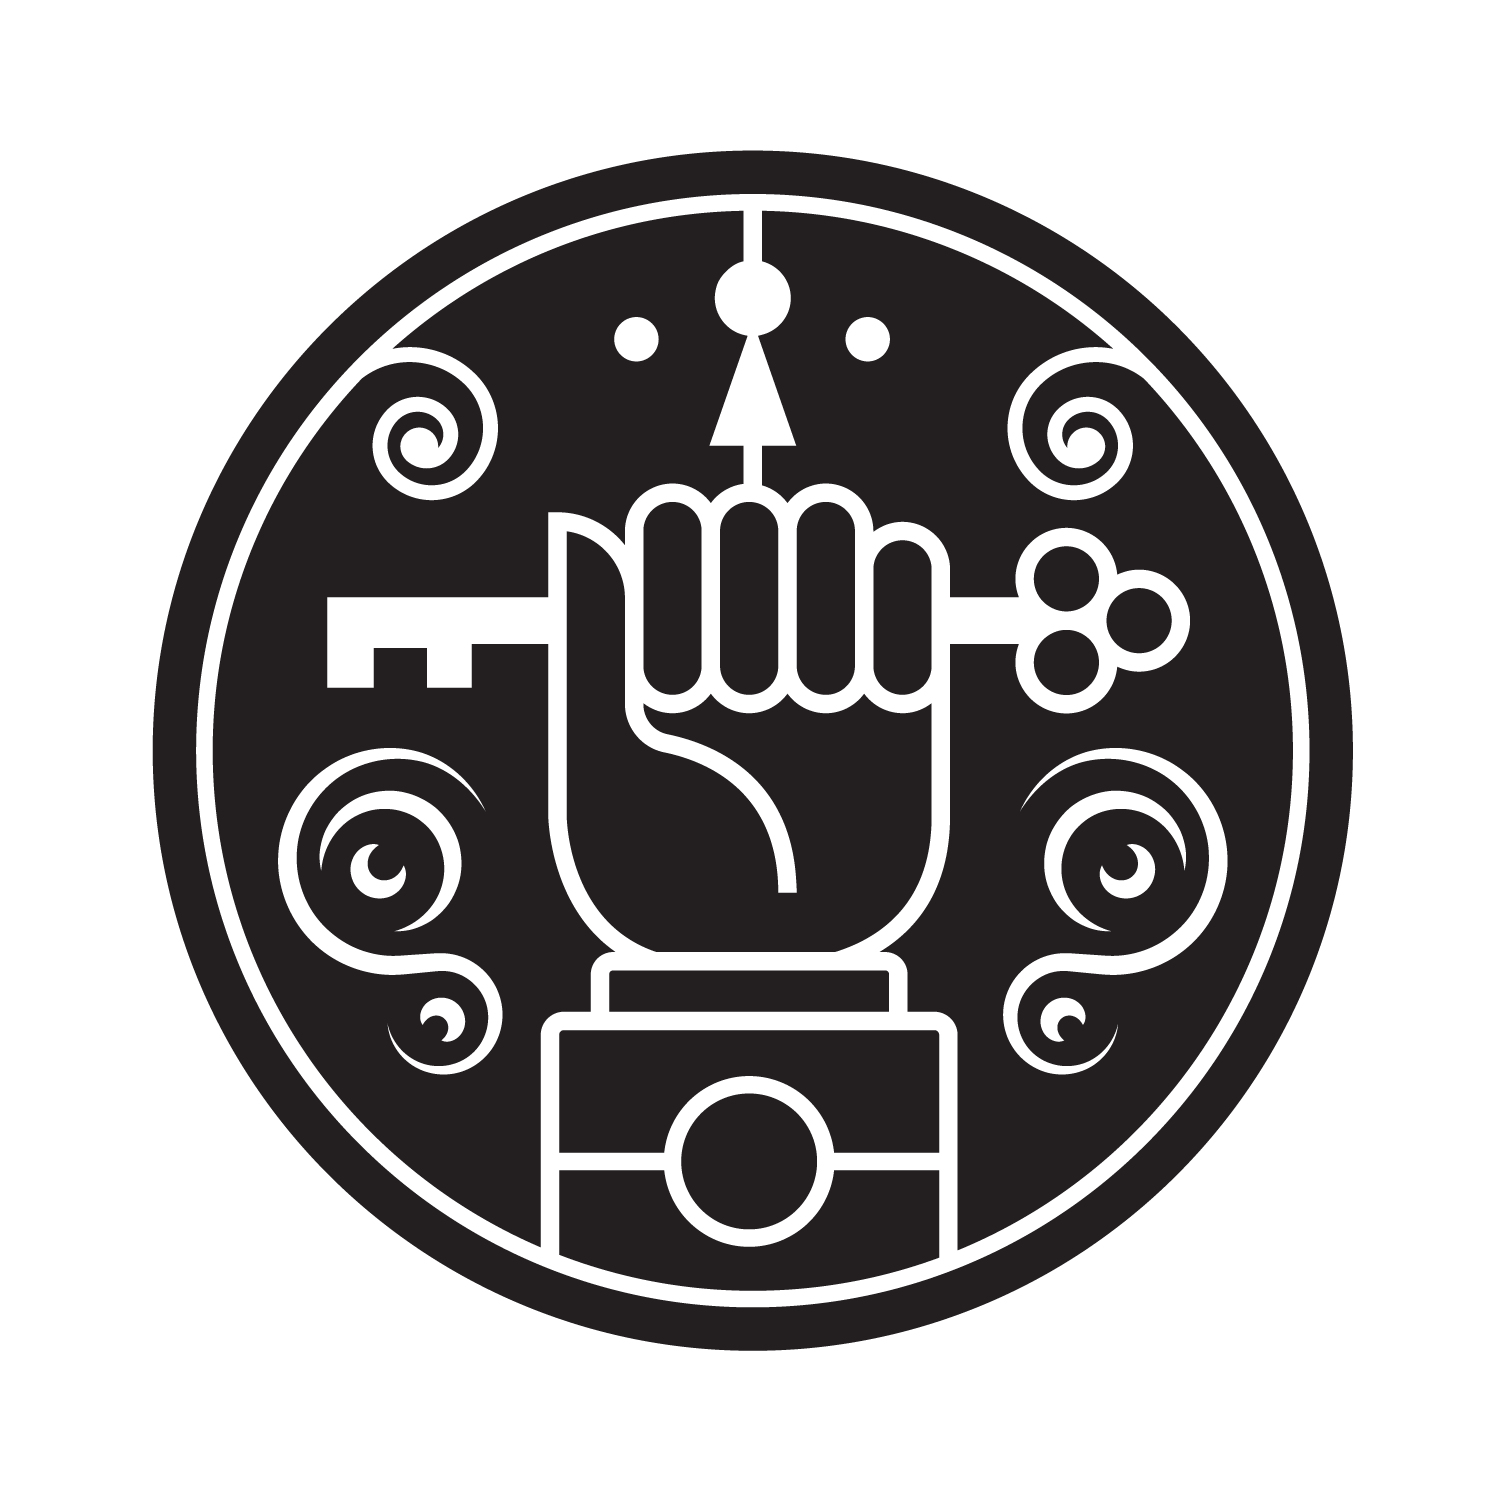 BABE_CO_ICONS_F_HAND.png